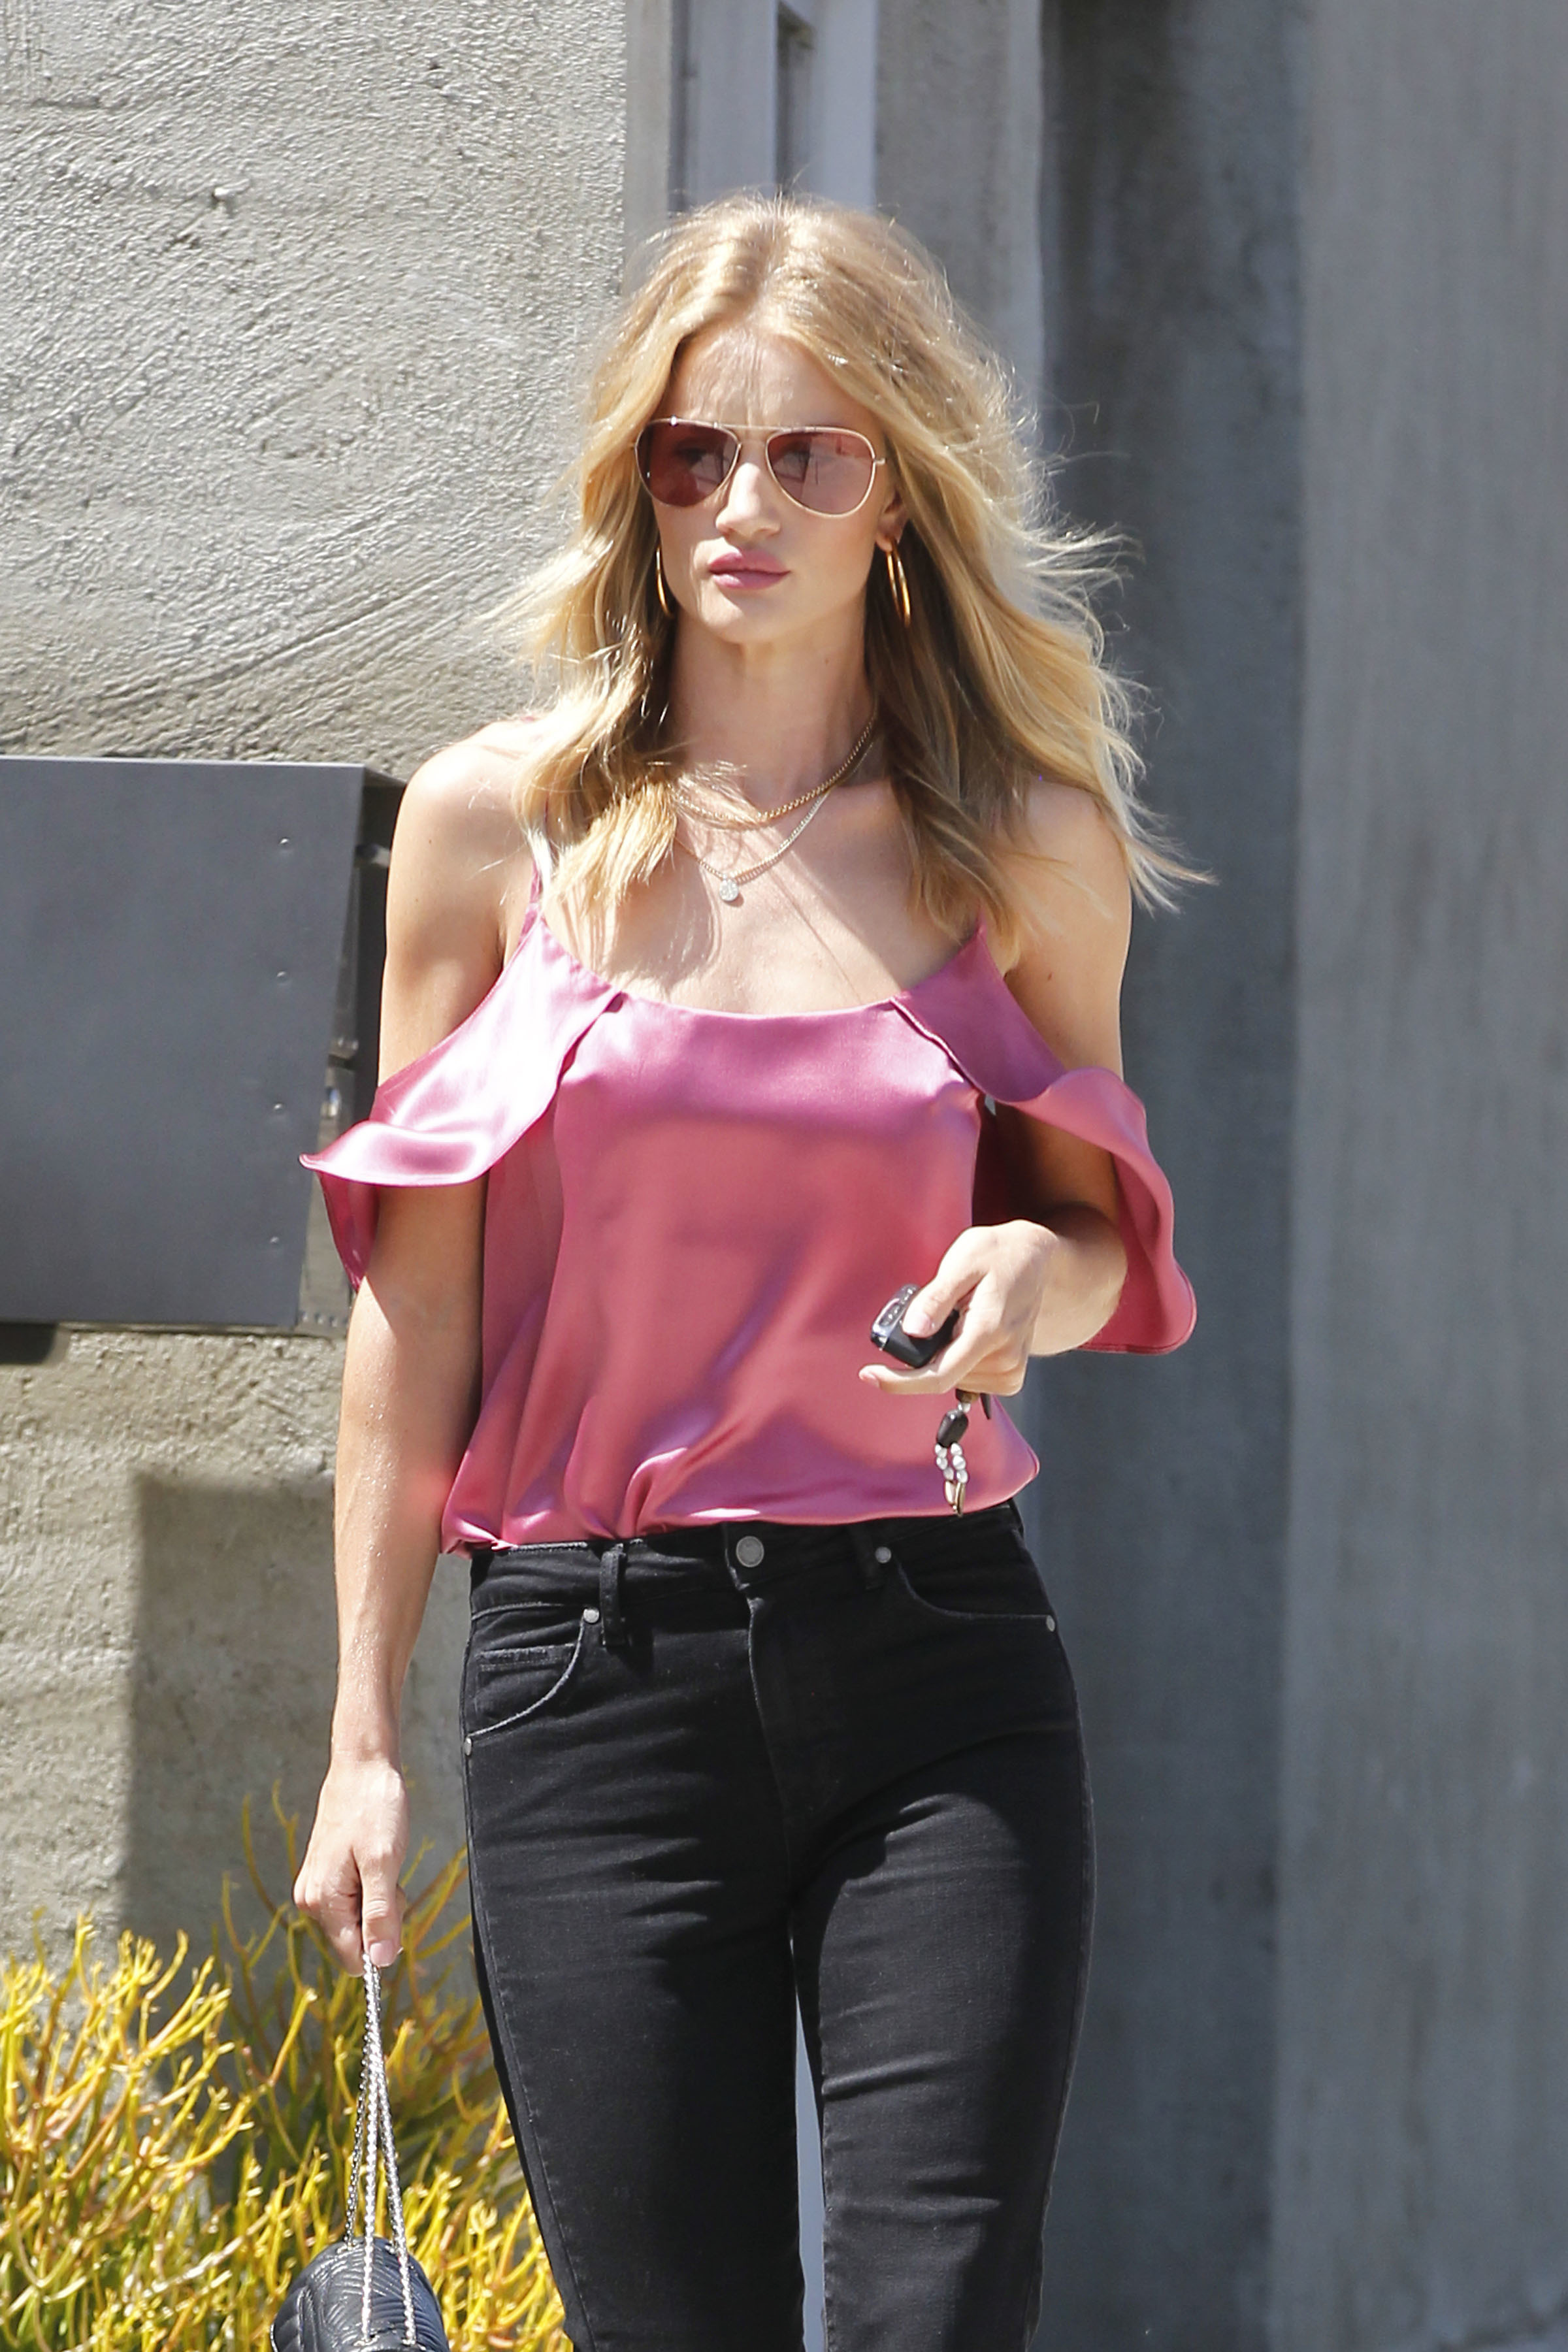 Page 3 Pics >> Rosie Huntington-Whiteley West Hollywood 12th July 2016 1 - Satiny